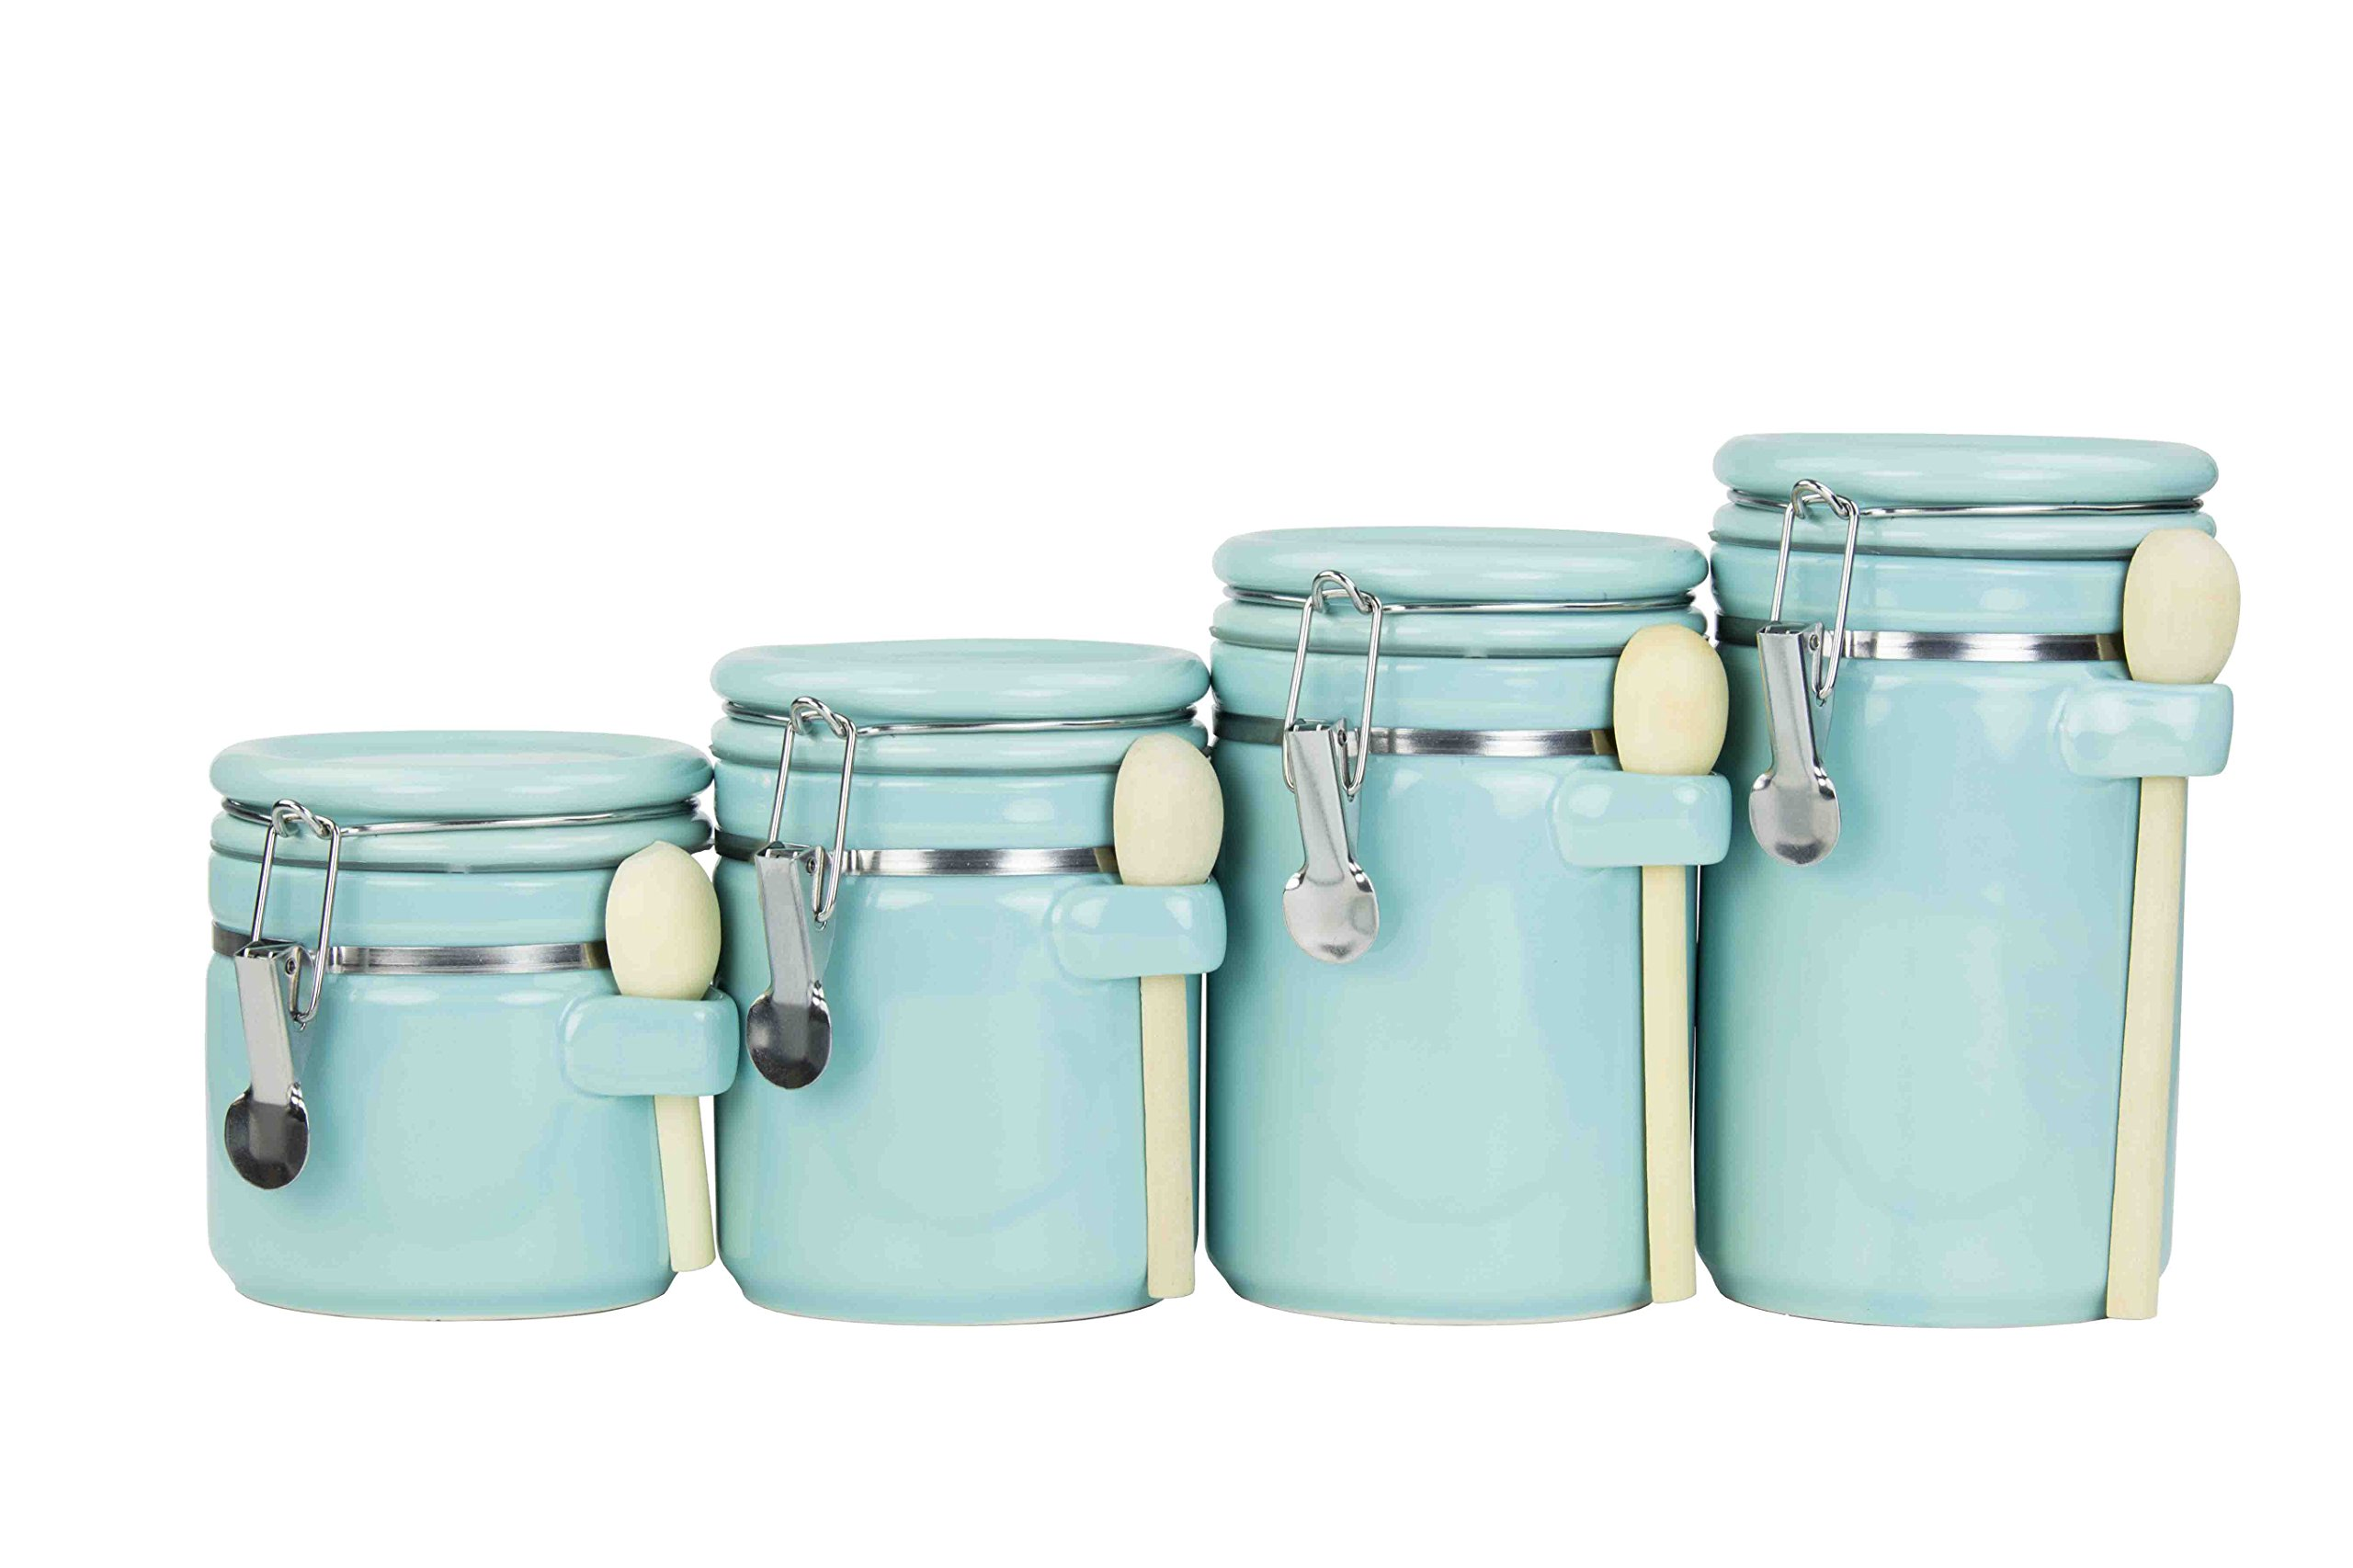 ceramic kitchen canister sets amazon com rh amazon com Turquoise Kitchen Canister Set Canister Sets for Kitchen Counter